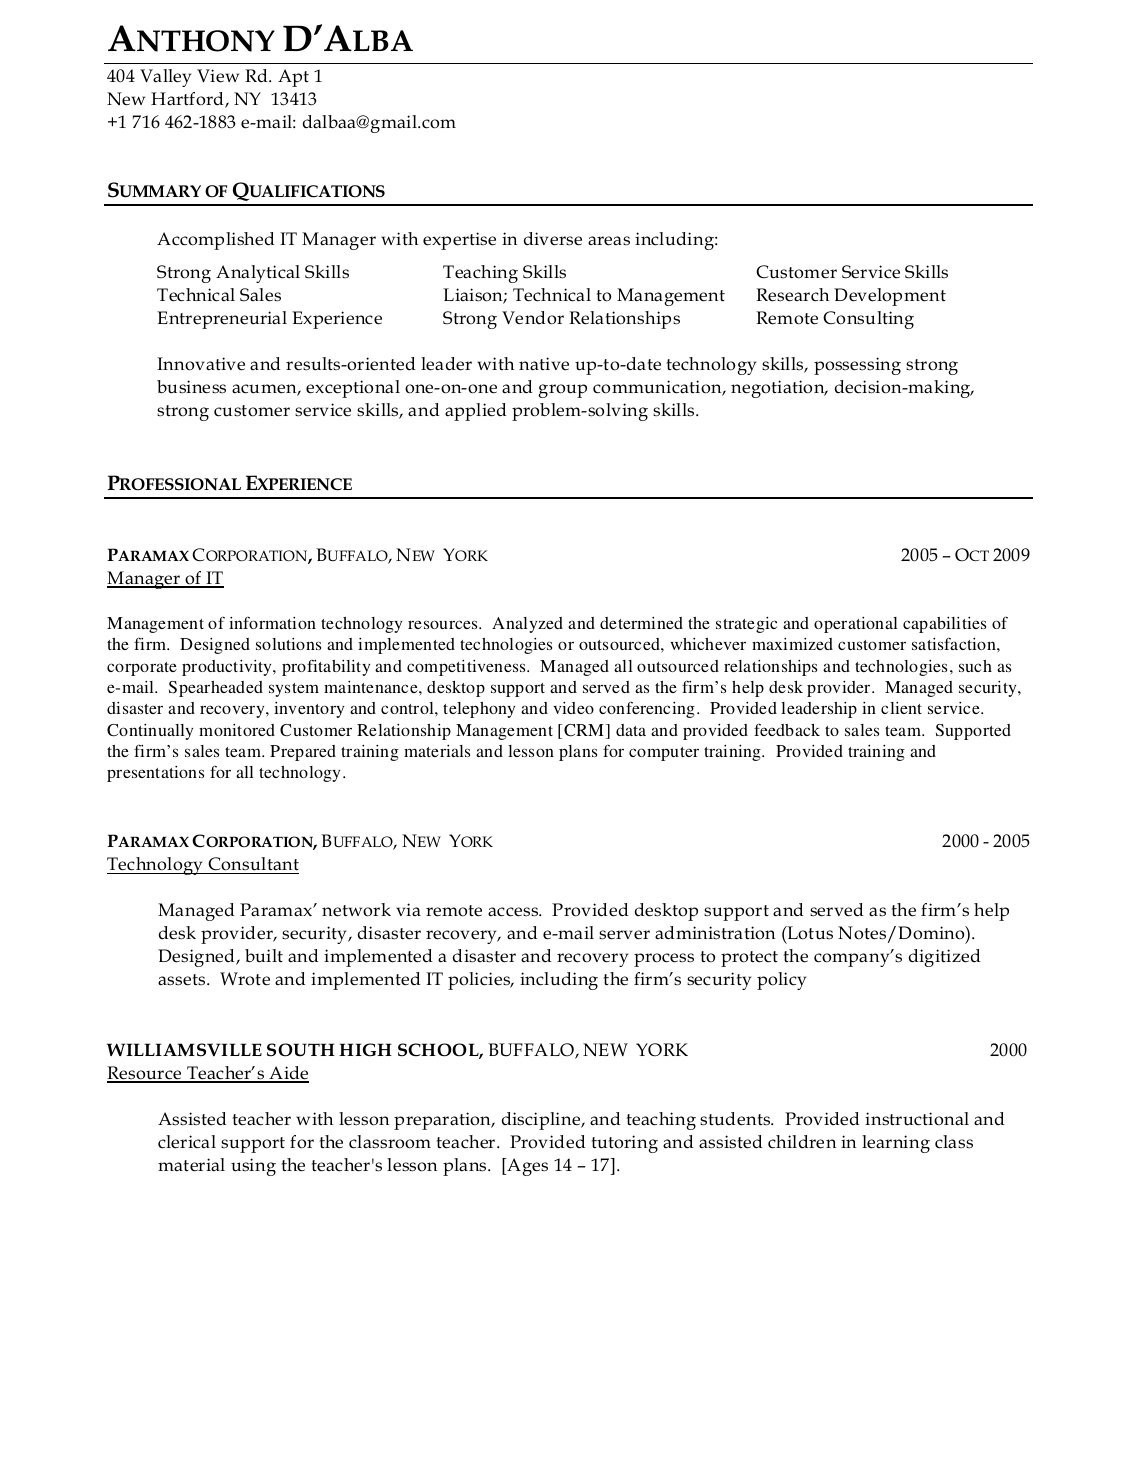 Optimal Resume Wyotech Login - Wyotech Optimal Resume Hirnsturm